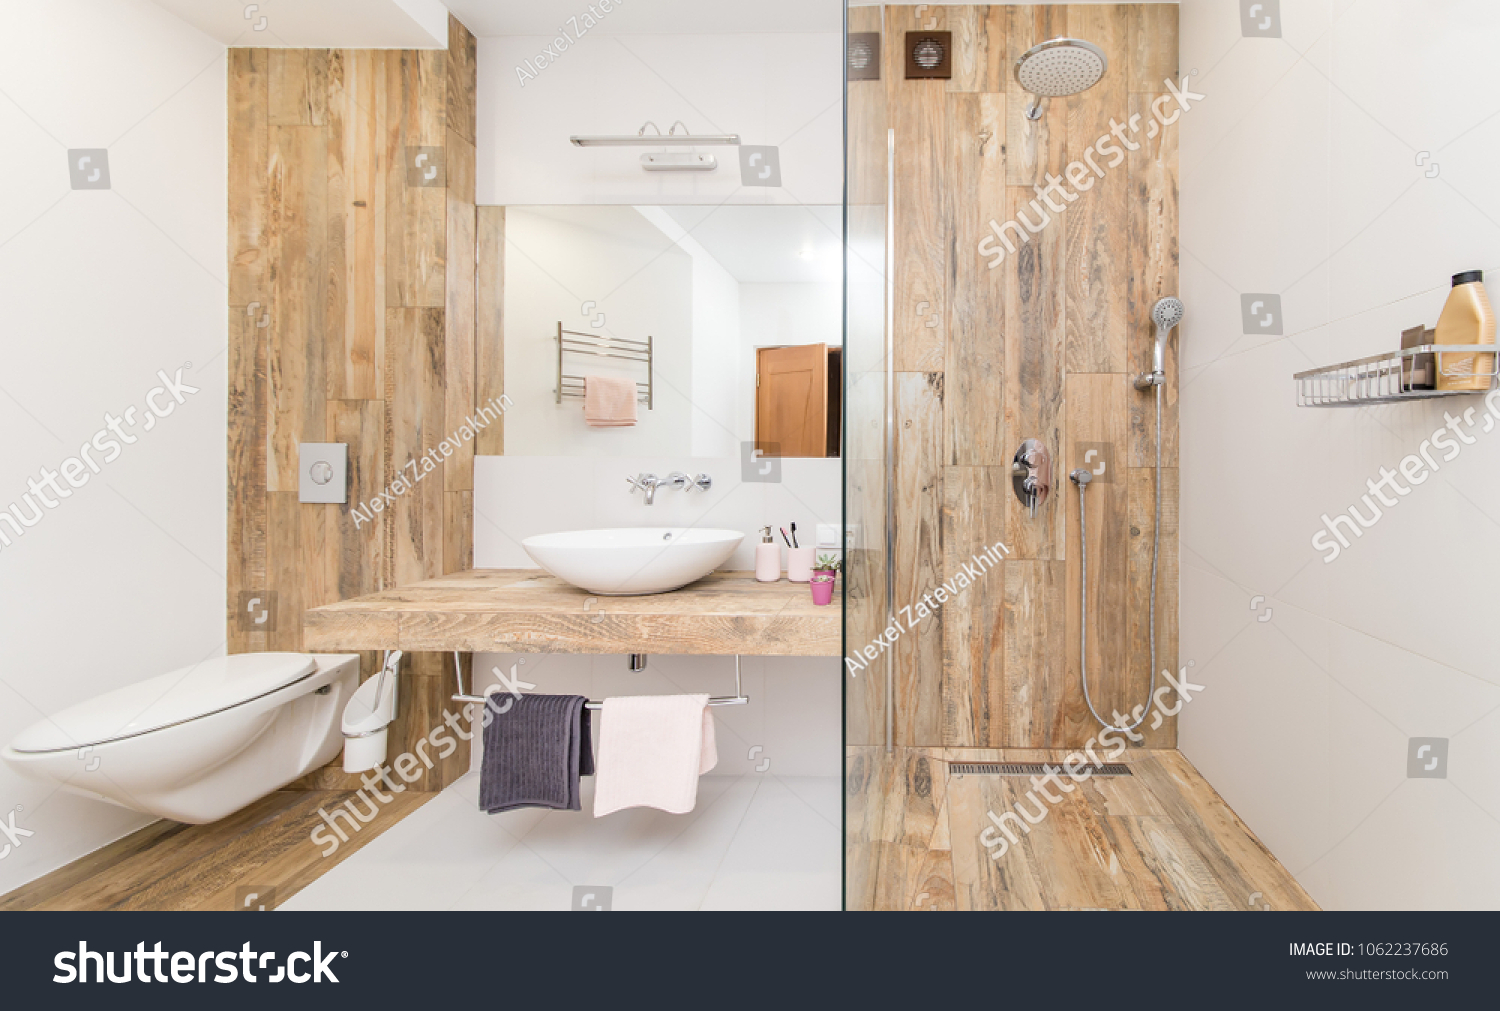 Modern Bathroom Interior Combined With Toilet. Shower Room And Toilet Are  Covered With Tiles In